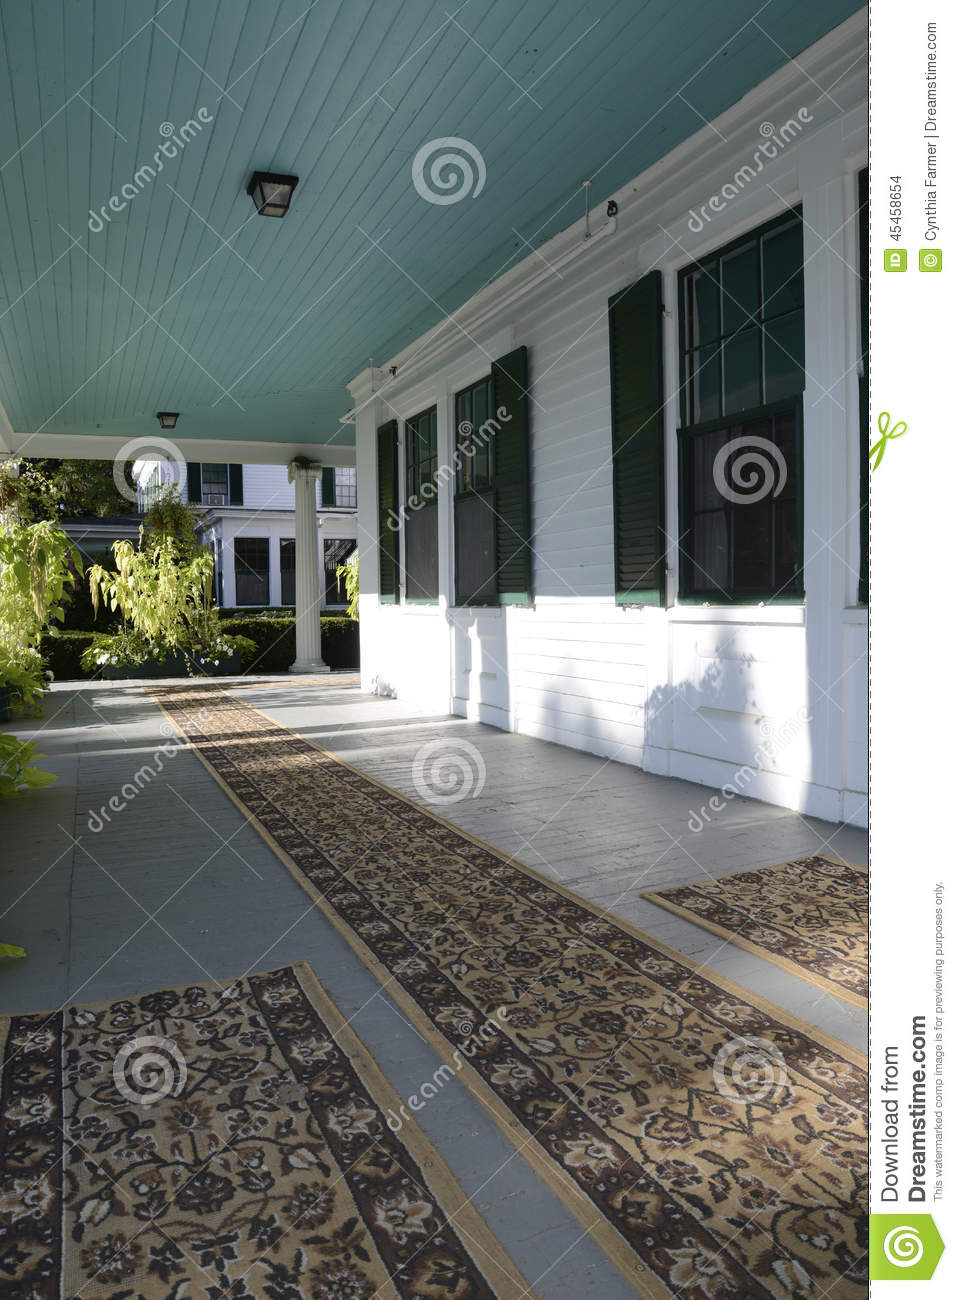 Covered front porch craftsman style home royalty free stock image - Royalty Free Stock Photo Covered Floor Front